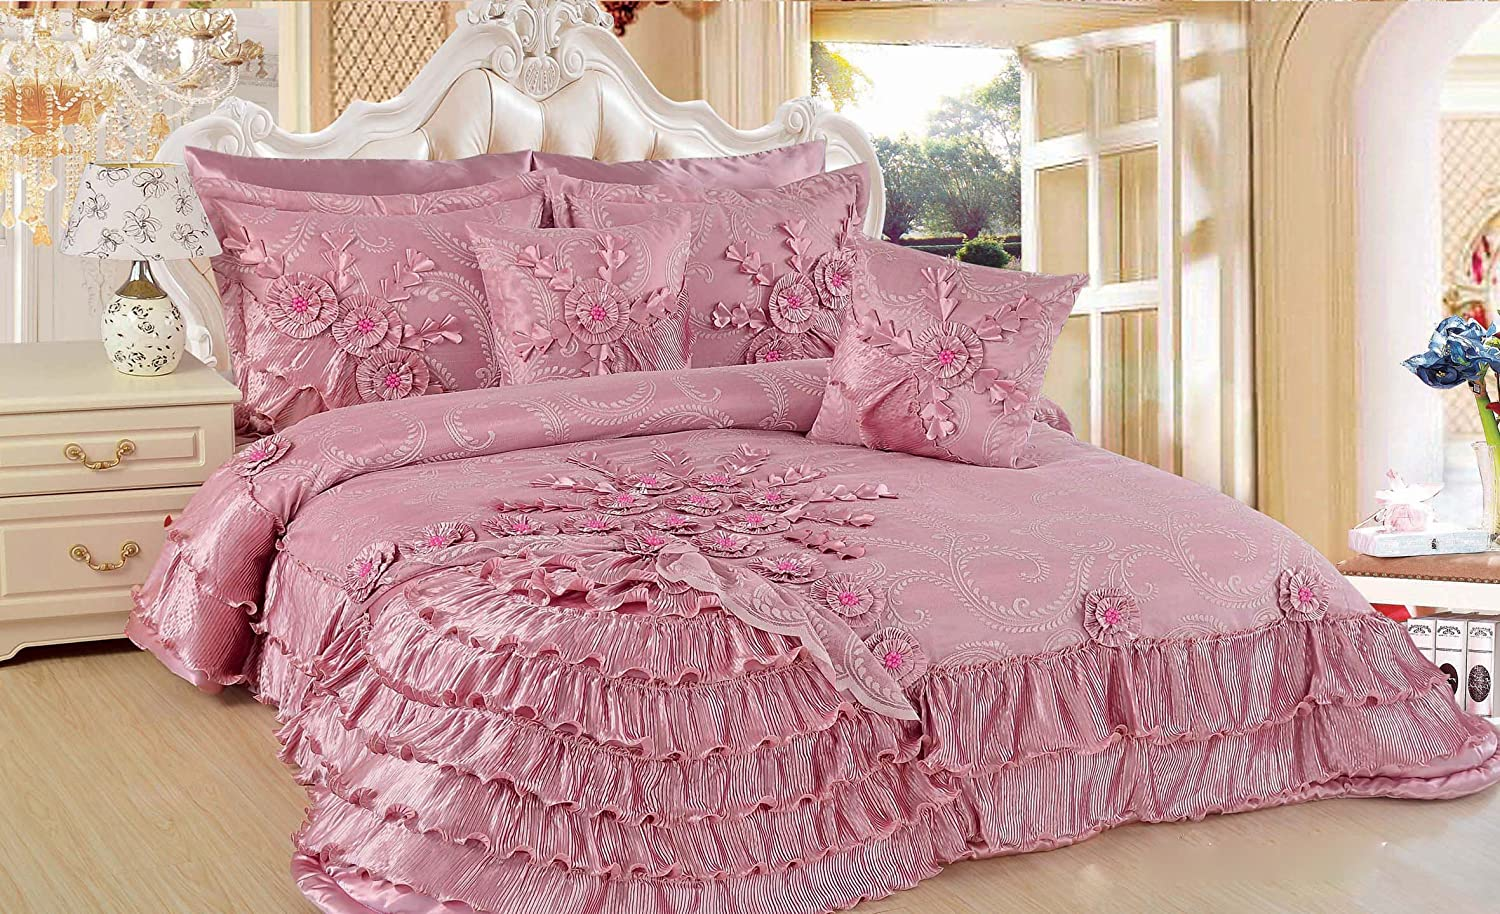 DaDa Bedding BM1227-CK5 5-Piece Blooming Comforter Set, Cal. King Size, Cherry Blossom Pink